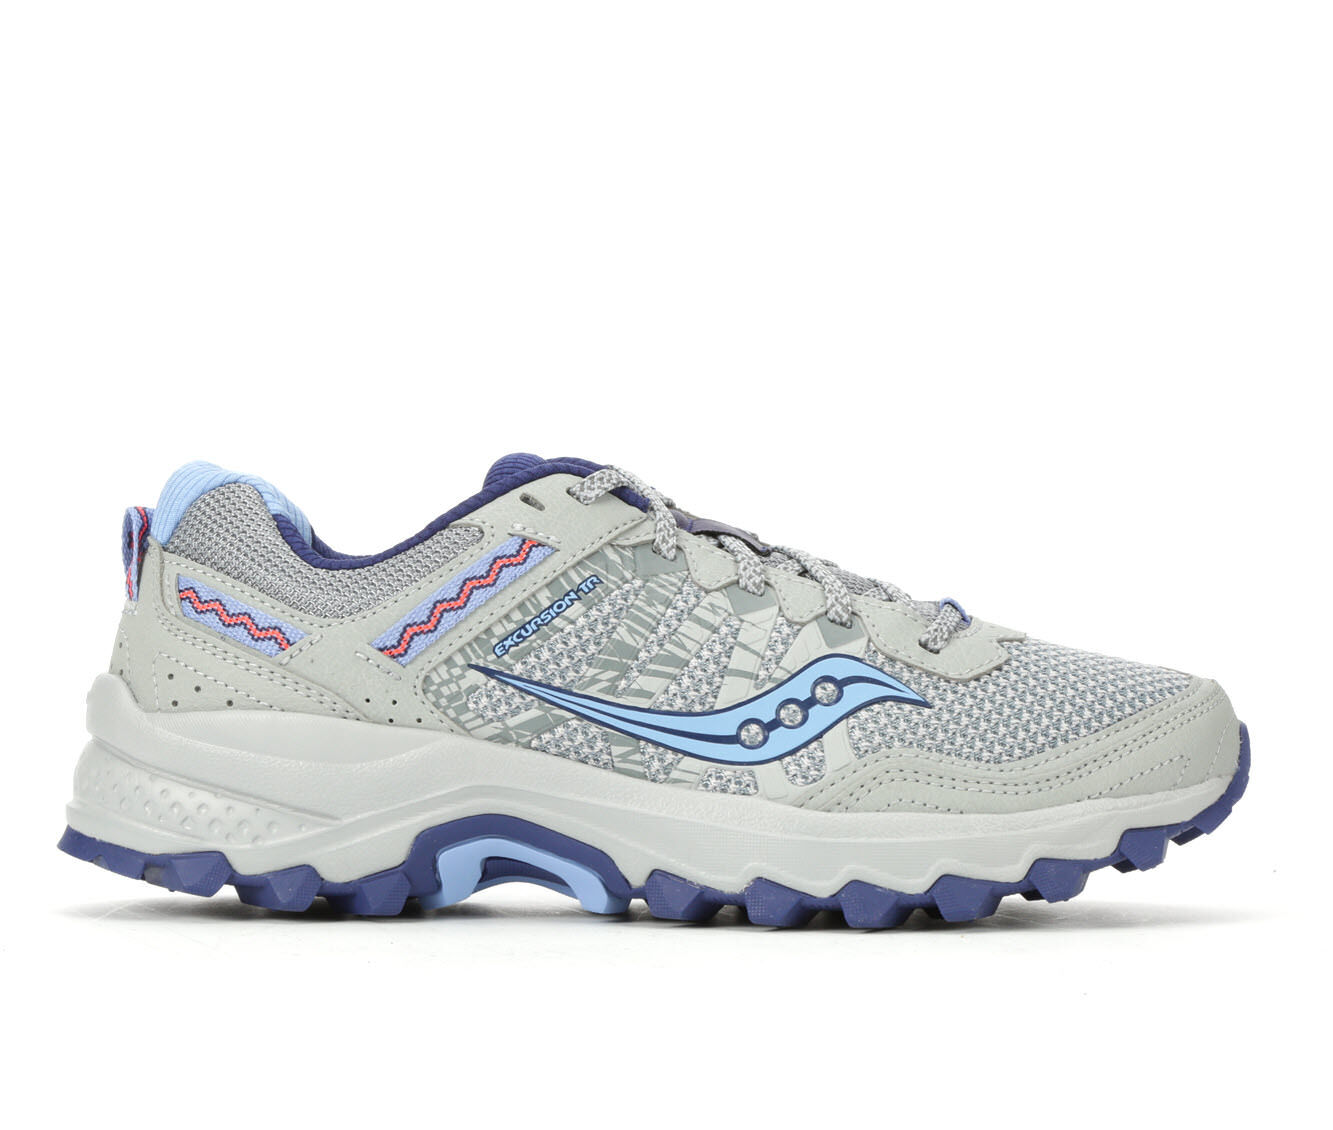 Women's Saucony Excursion TR 12 Trail Running Shoes Grey/Blue/Pink